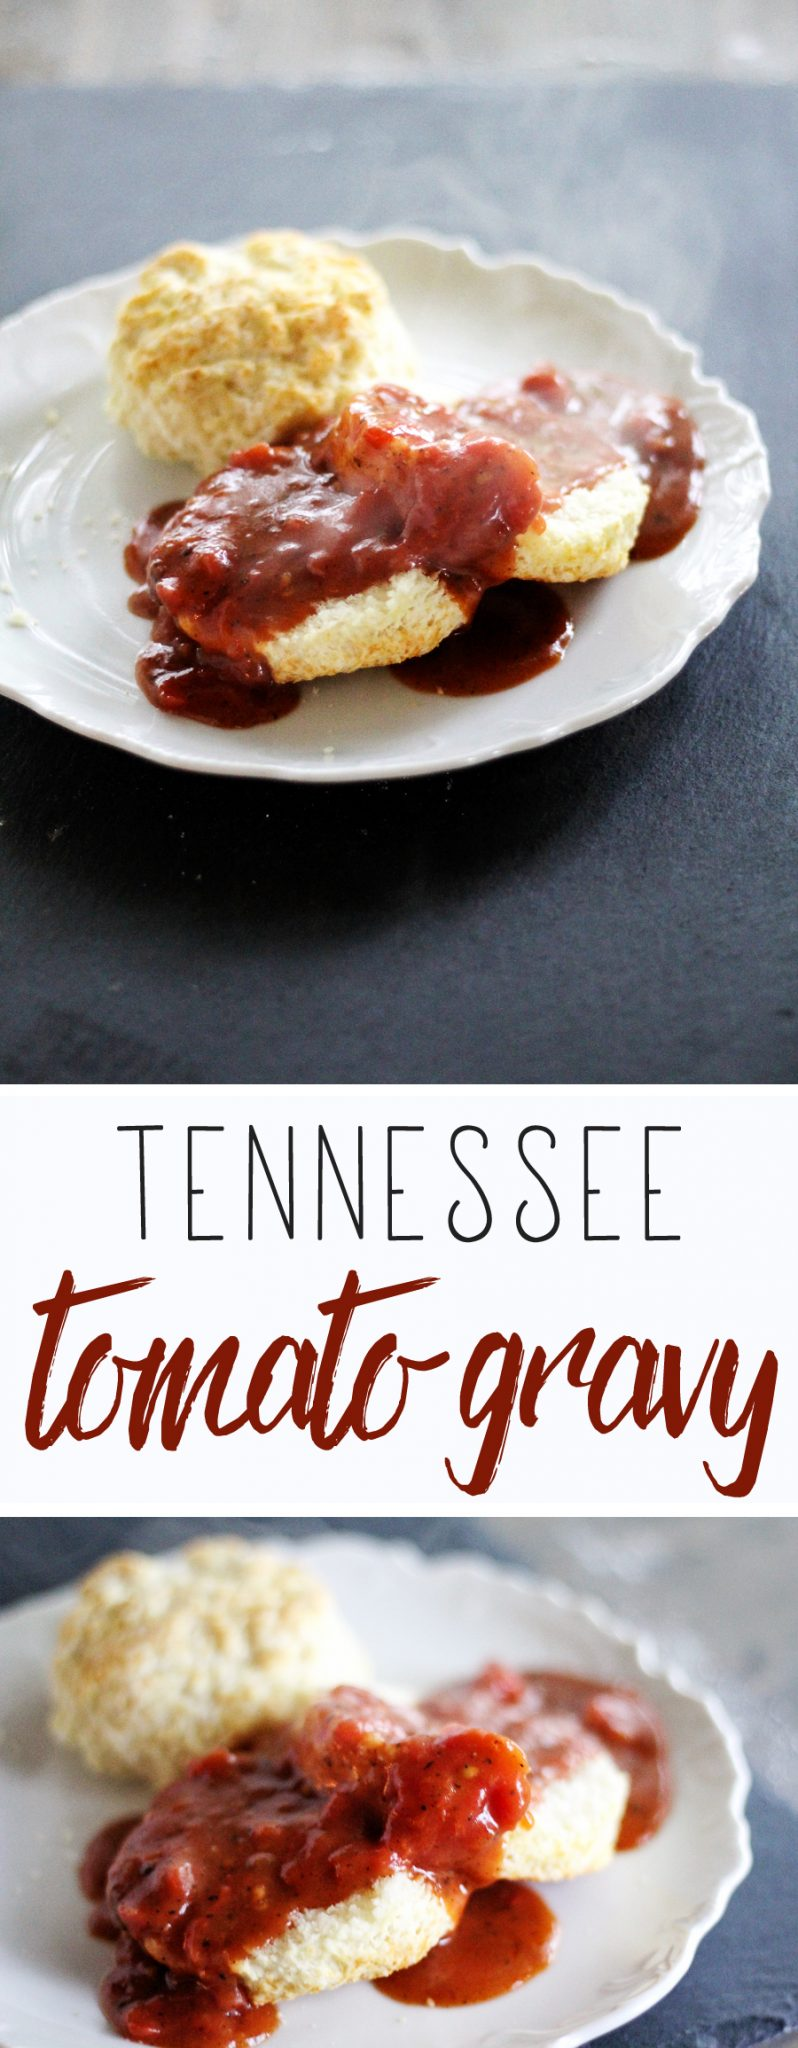 This recipe was adapted from my father in law's famous Tomato Gravy. Hope you love it!